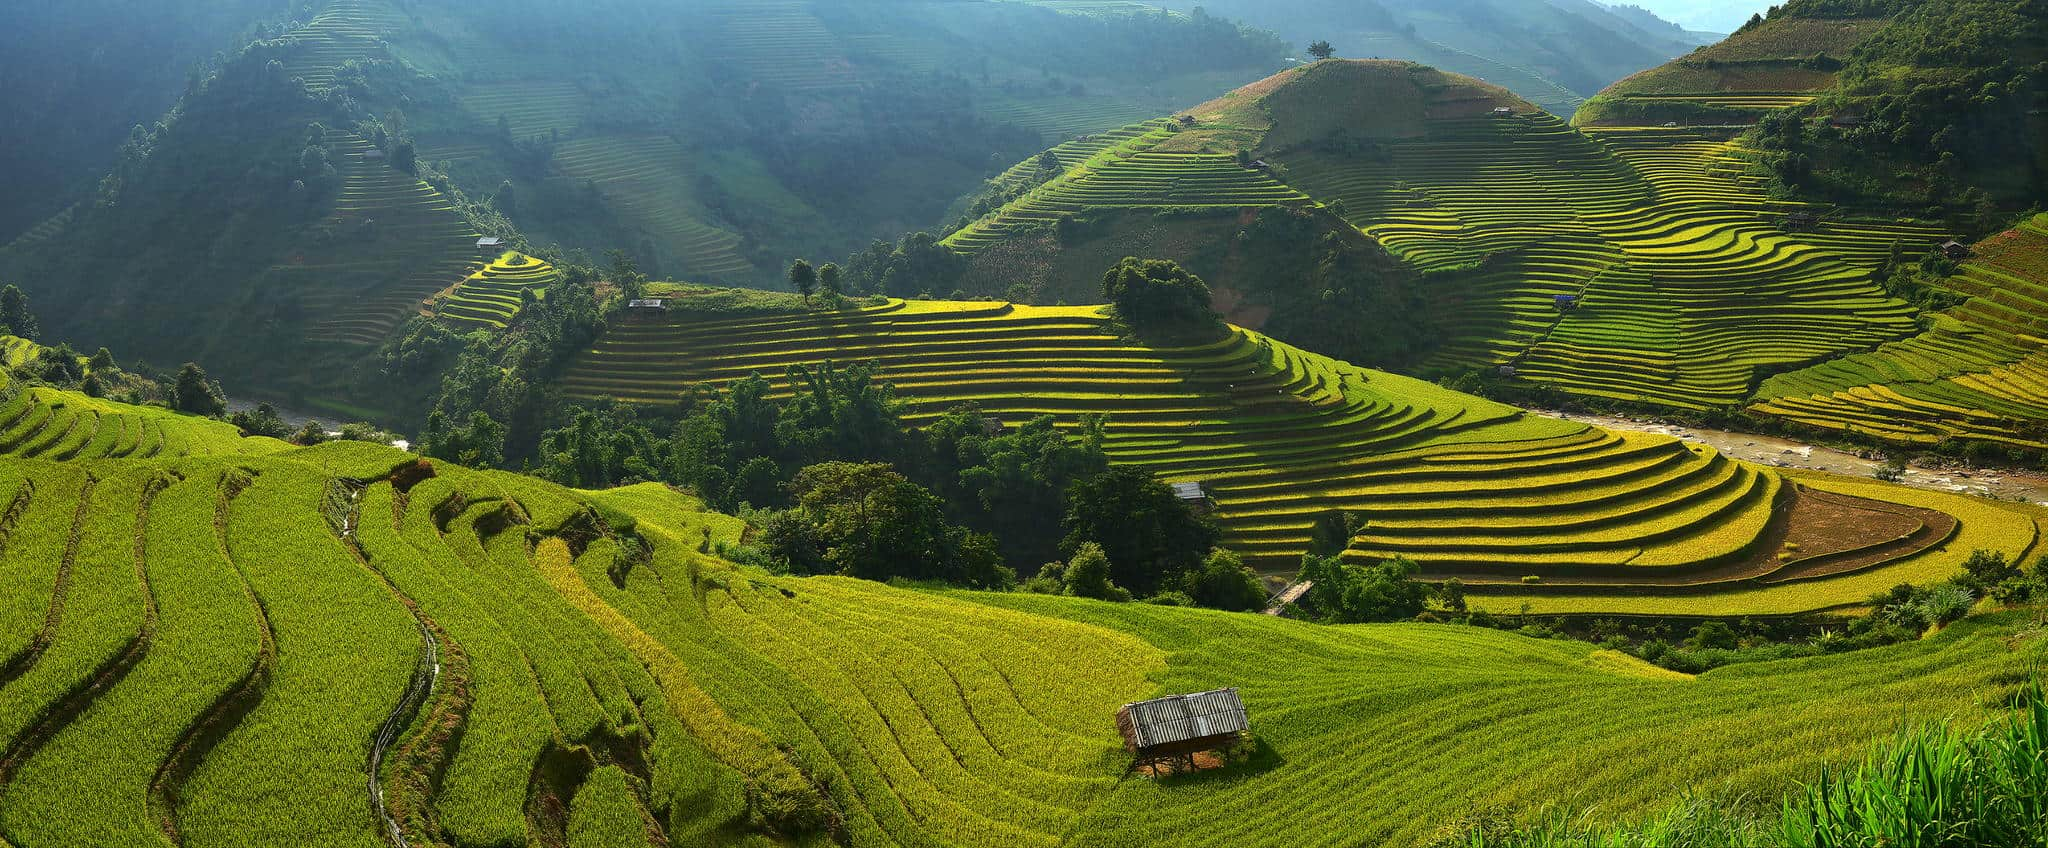 Mu cang chai rice terraces in vietnam placeaholic for What are terraces